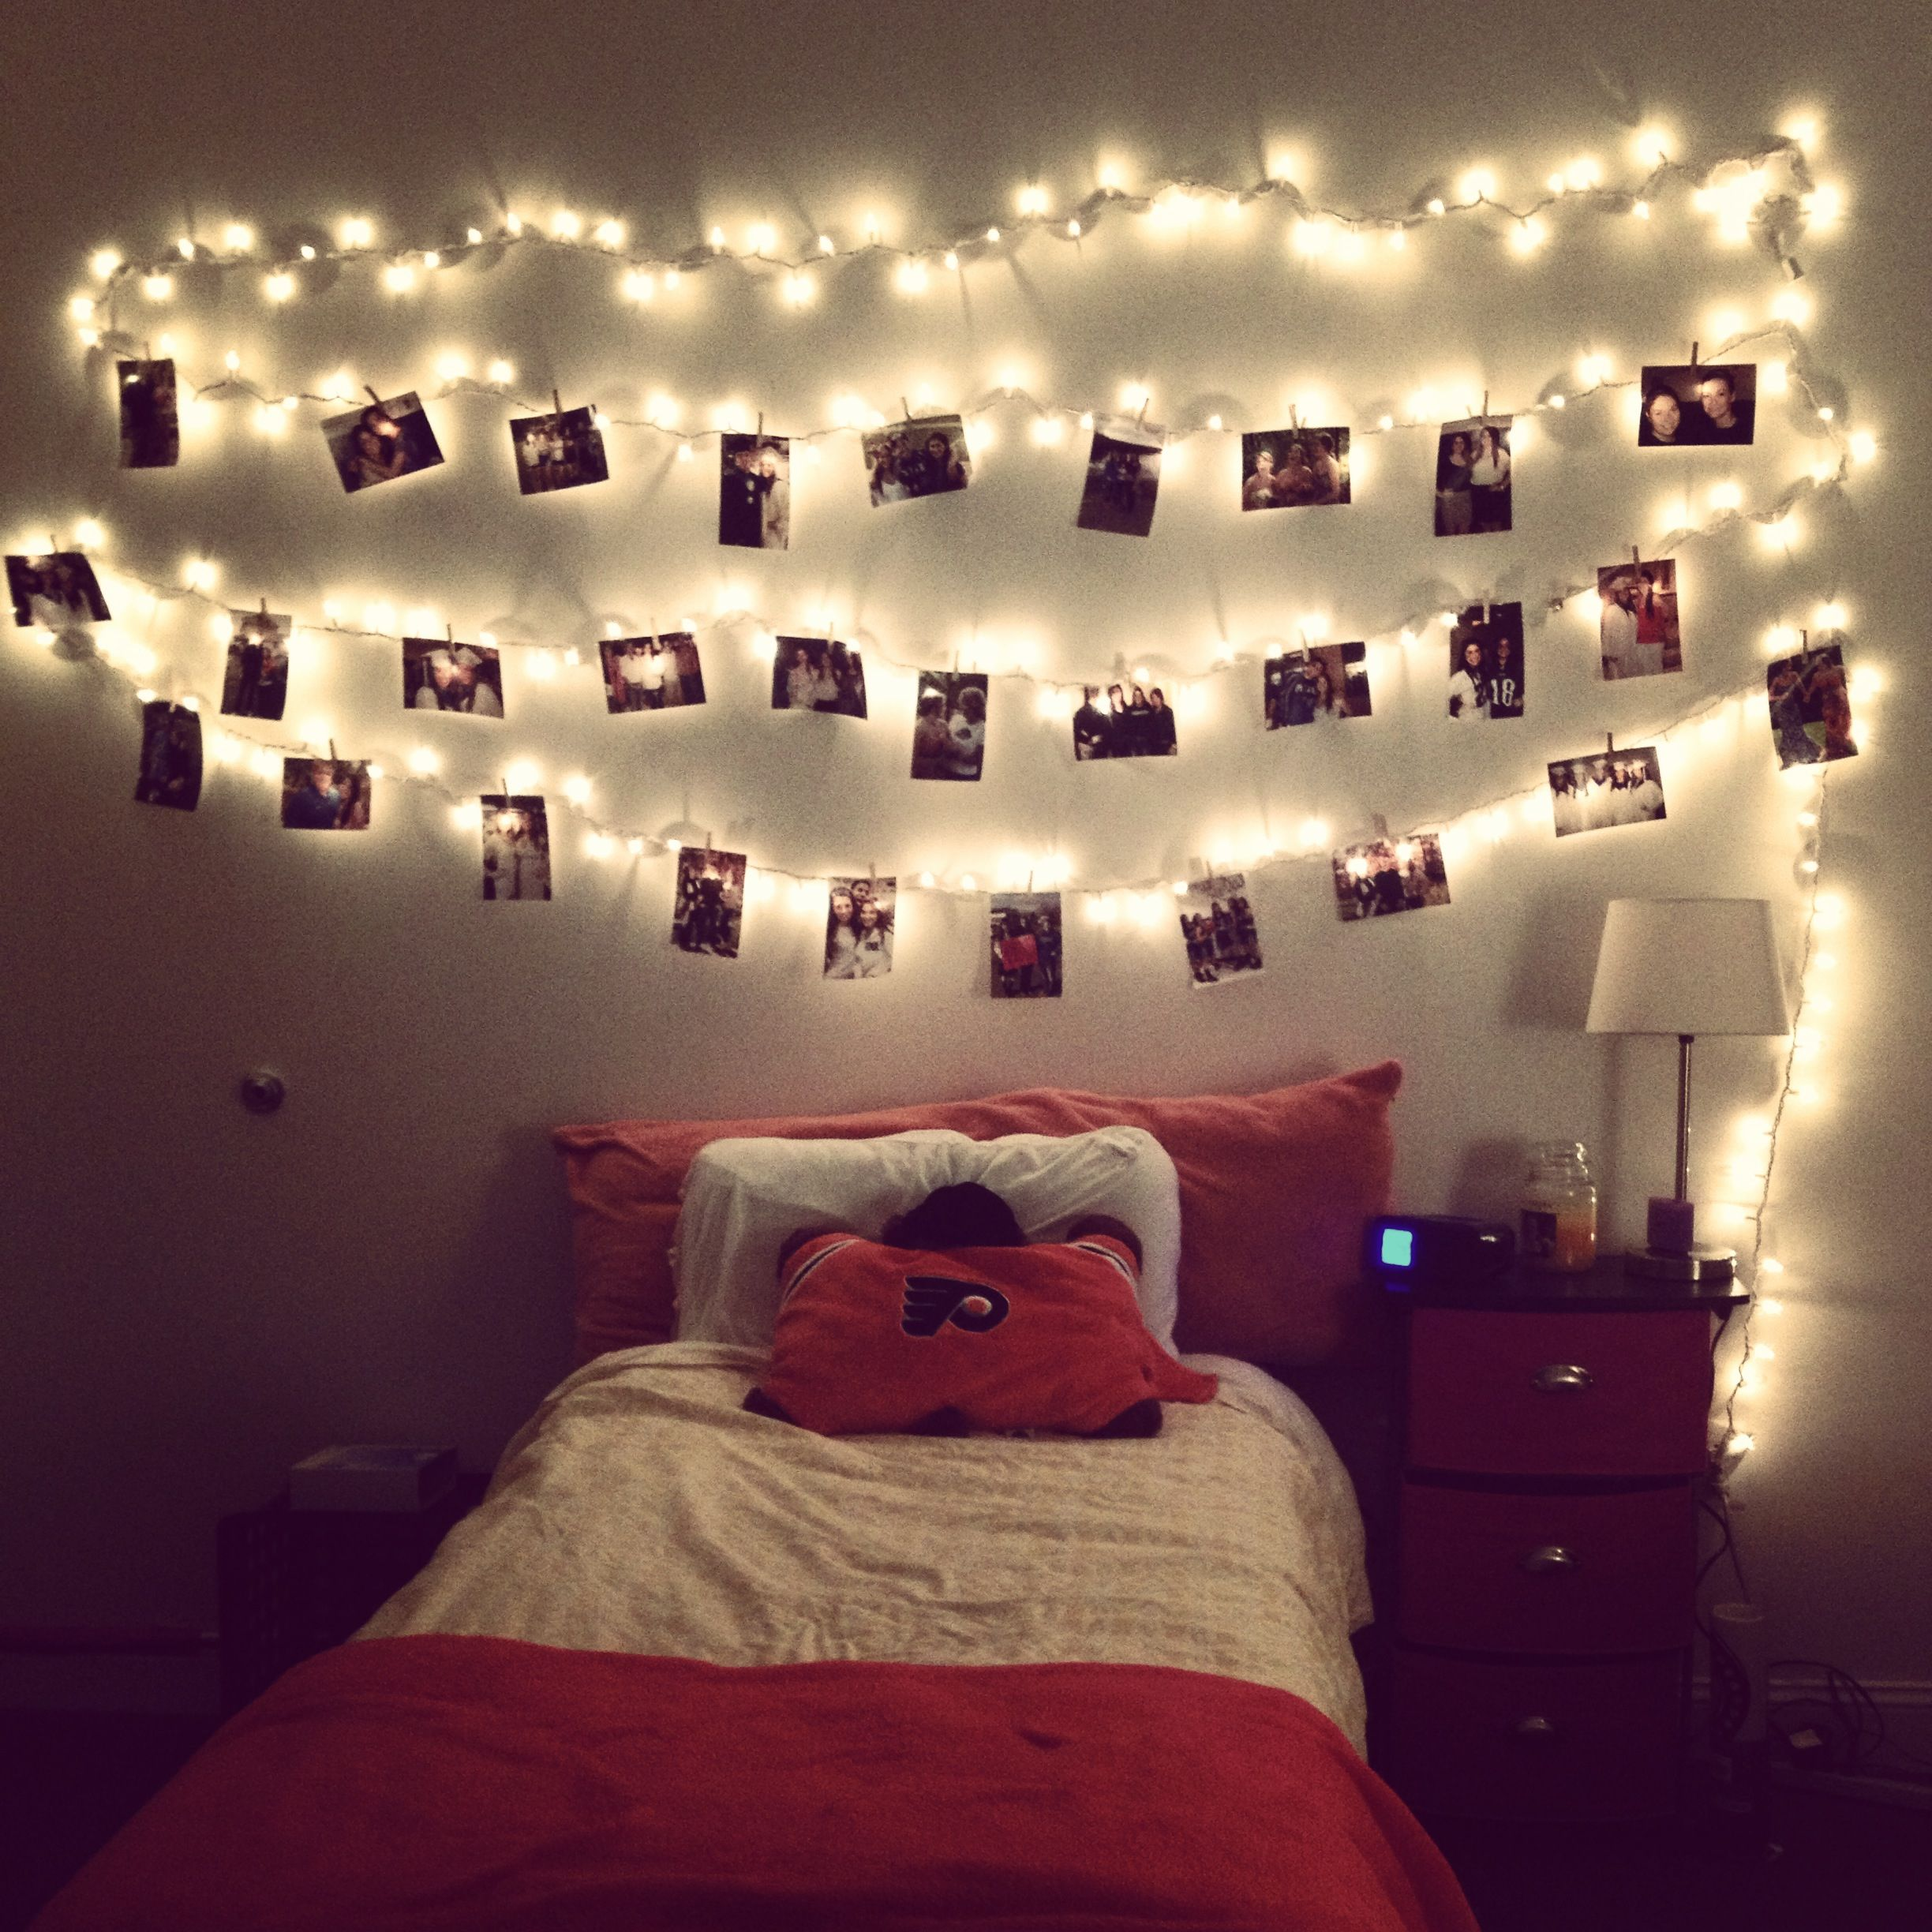 Hang Lights And Cute Pictures With Clothes Pins, Love This Instead Of Like  A Gallery · Teen BedroomsRomantic BedroomsDorm Room ... Part 41